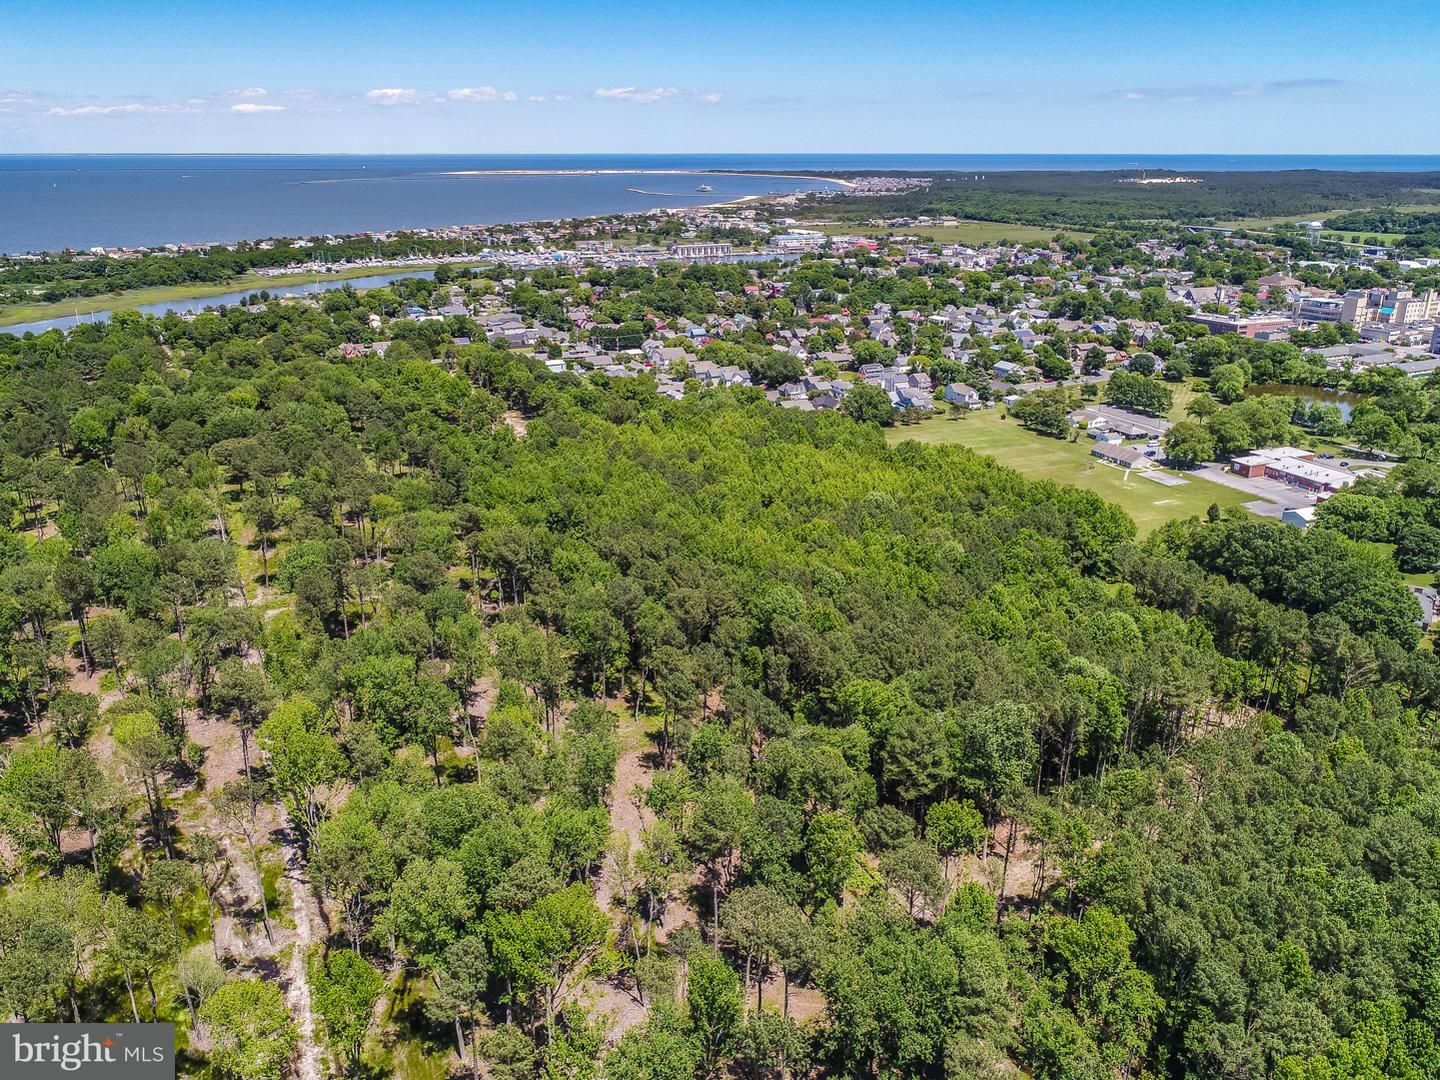 1002047892-300471115583-2018-08-04-07-32-08 Lot 20 Virden Way | Lewes, DE Real Estate For Sale | MLS# 1002047892  - Rehoboth Beach Real Estate - Bryce Lingo and Shaun Tull REALTORS, Rehoboth Beach, Delaware